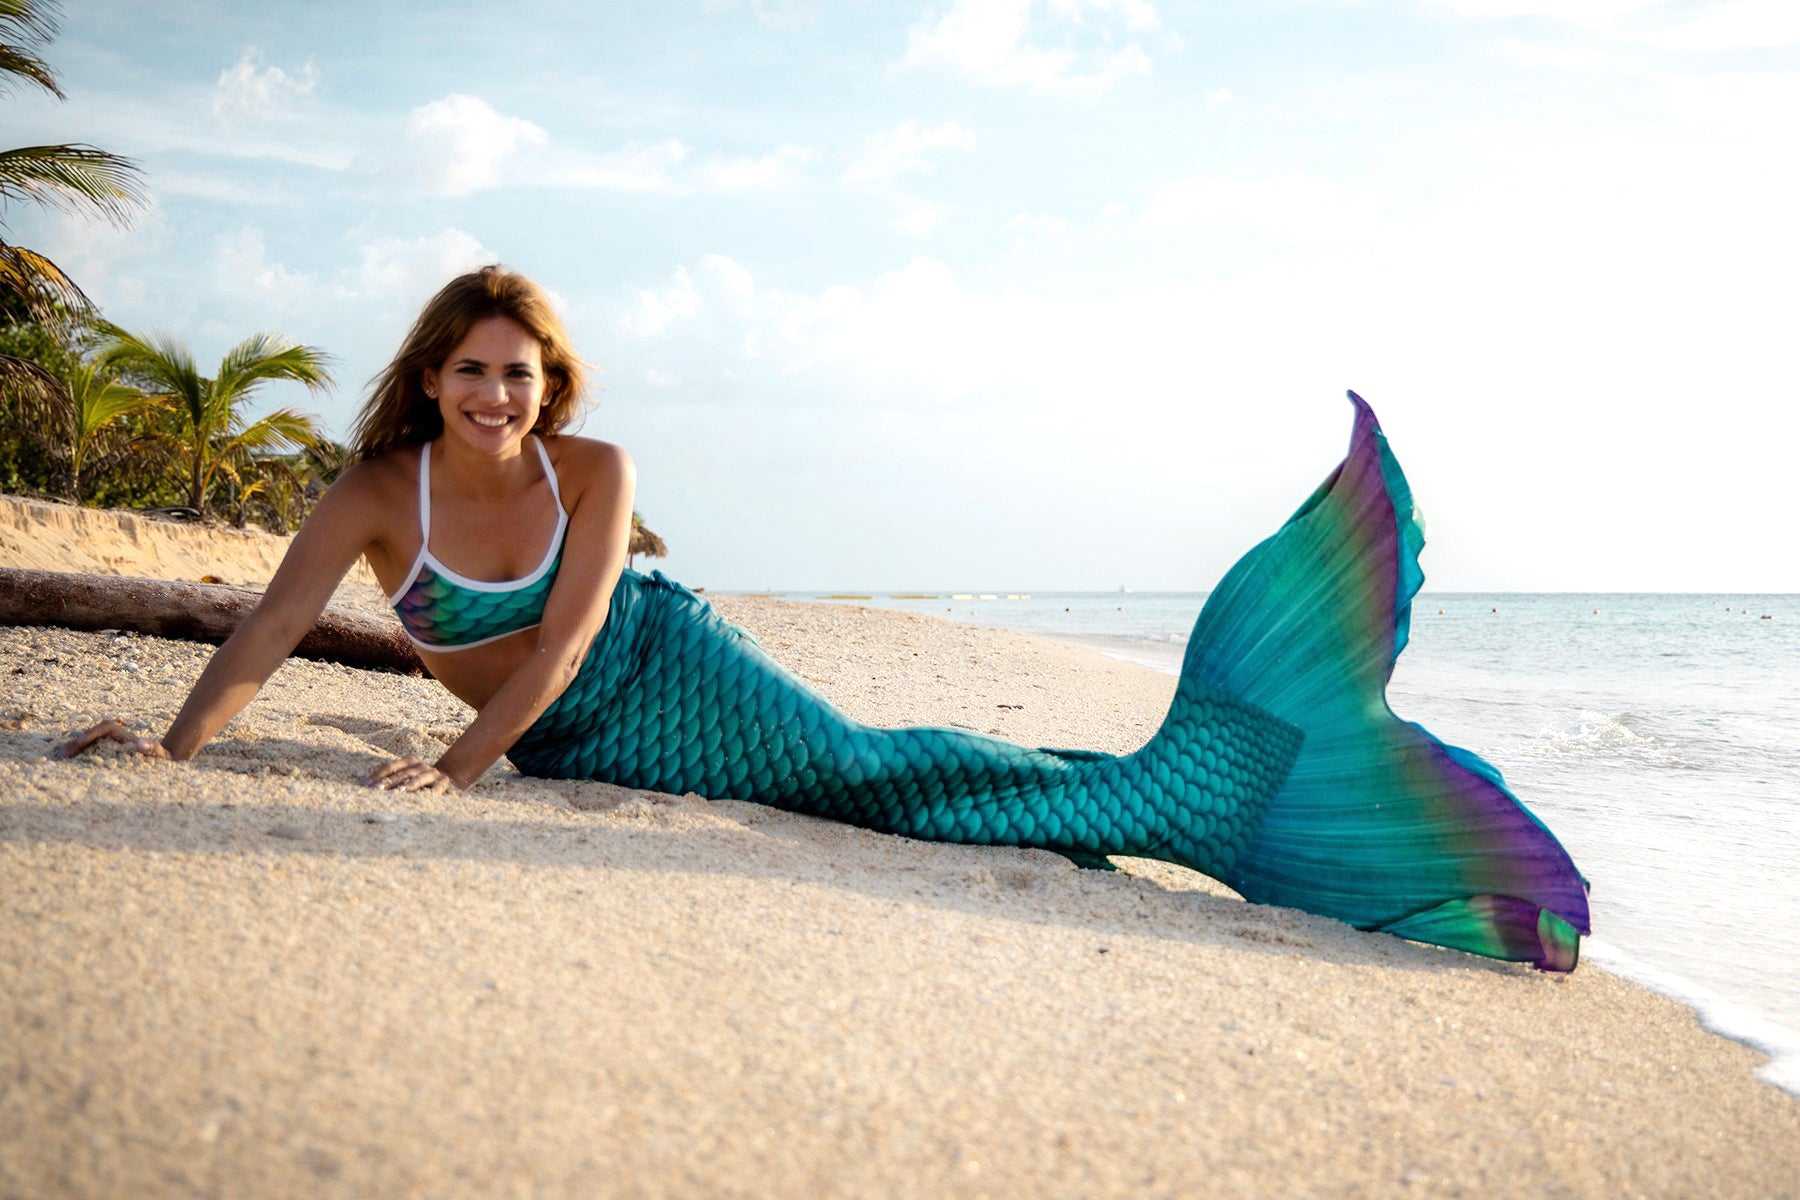 Caicos Mermaid Tail - DiveTail by Cape Cali